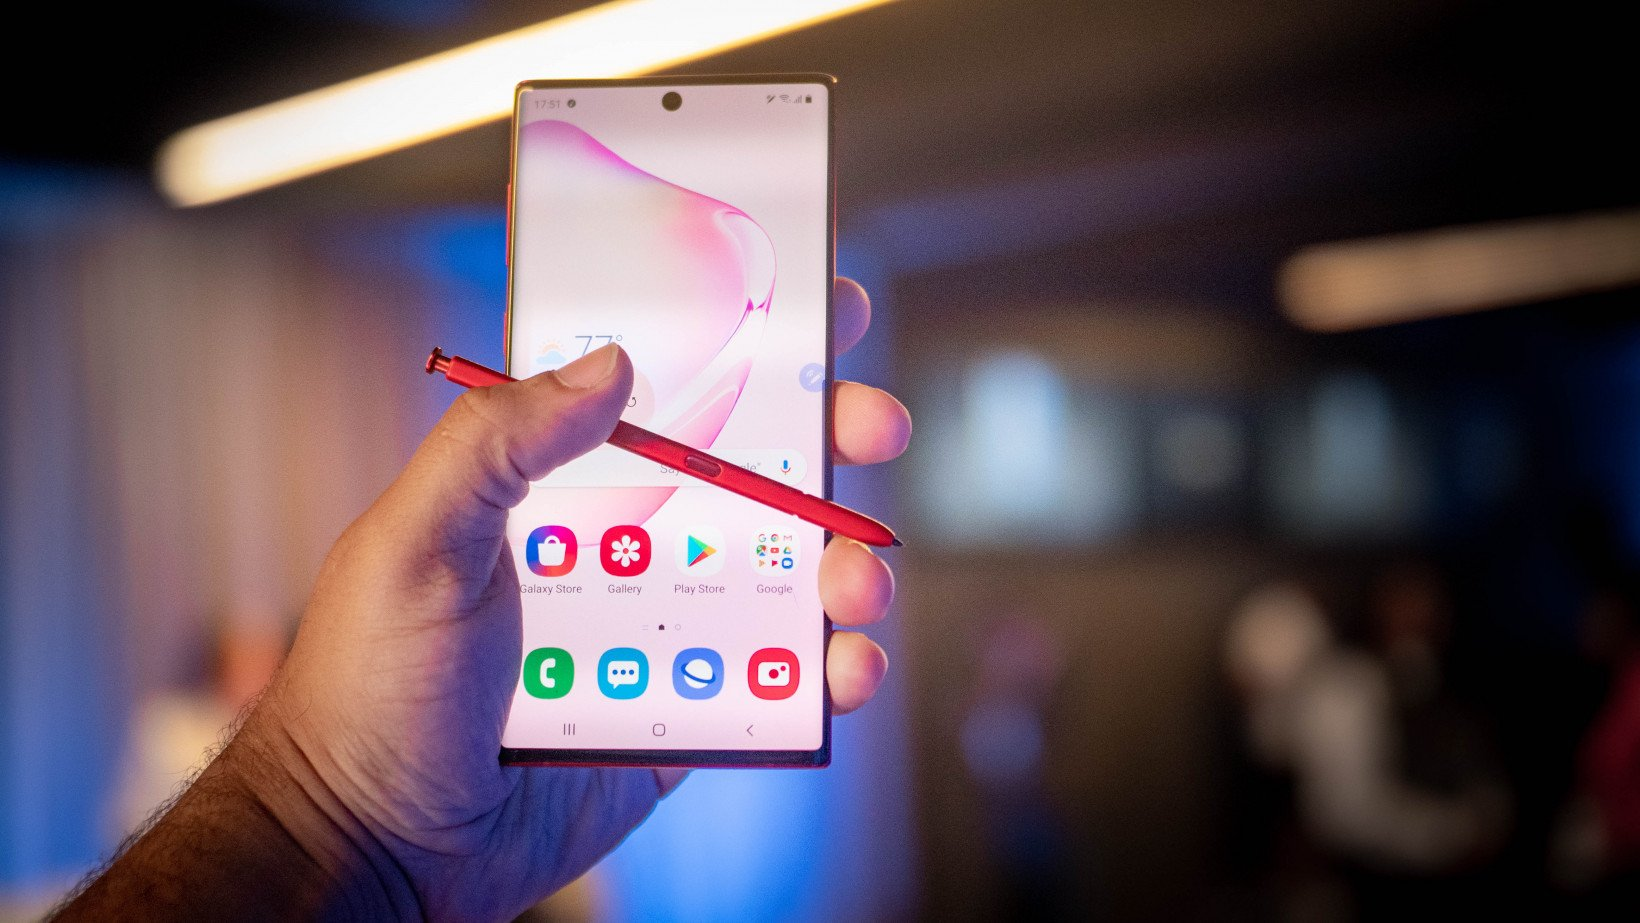 How to Unlock Samsung Galaxy Note 10 Plus from EE, Vodafone, O2